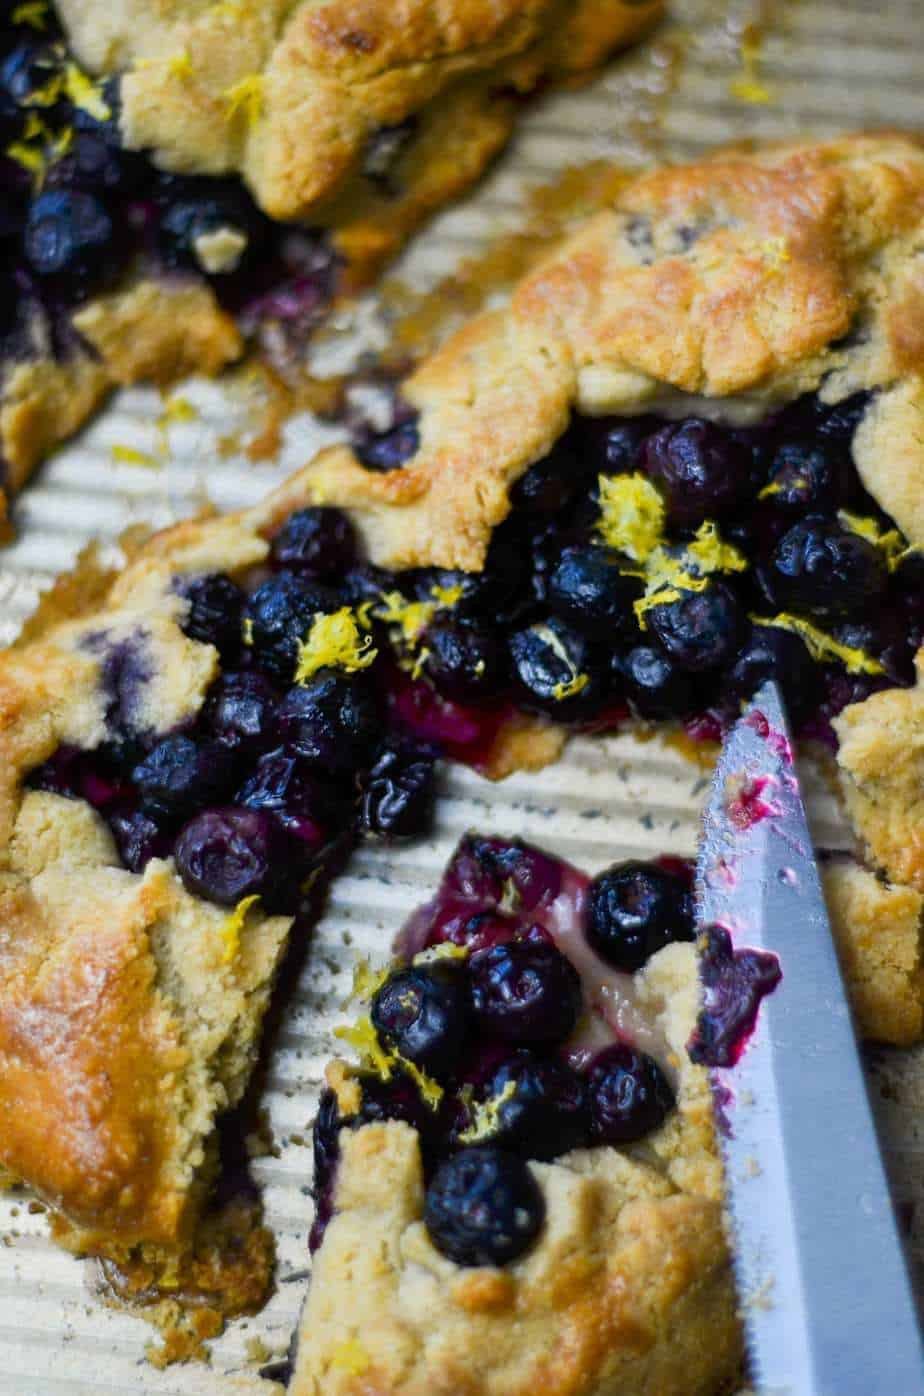 Flaky pie crust with a blueberry galette.